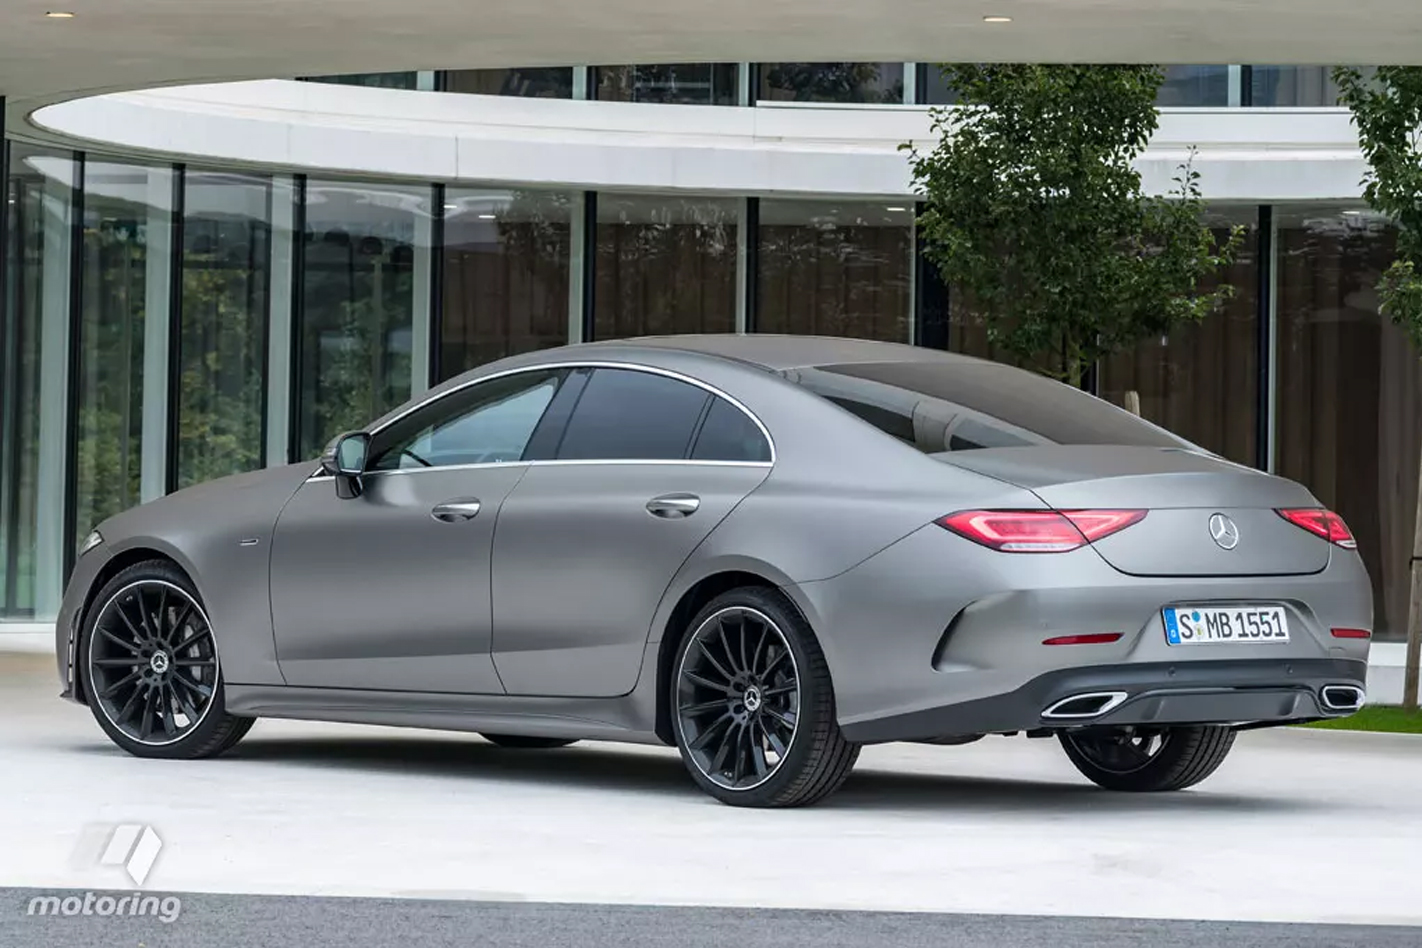 S 63 Amg 2017 >> 2018 Mercedes-Benz CLS – official images leaked Image 744879